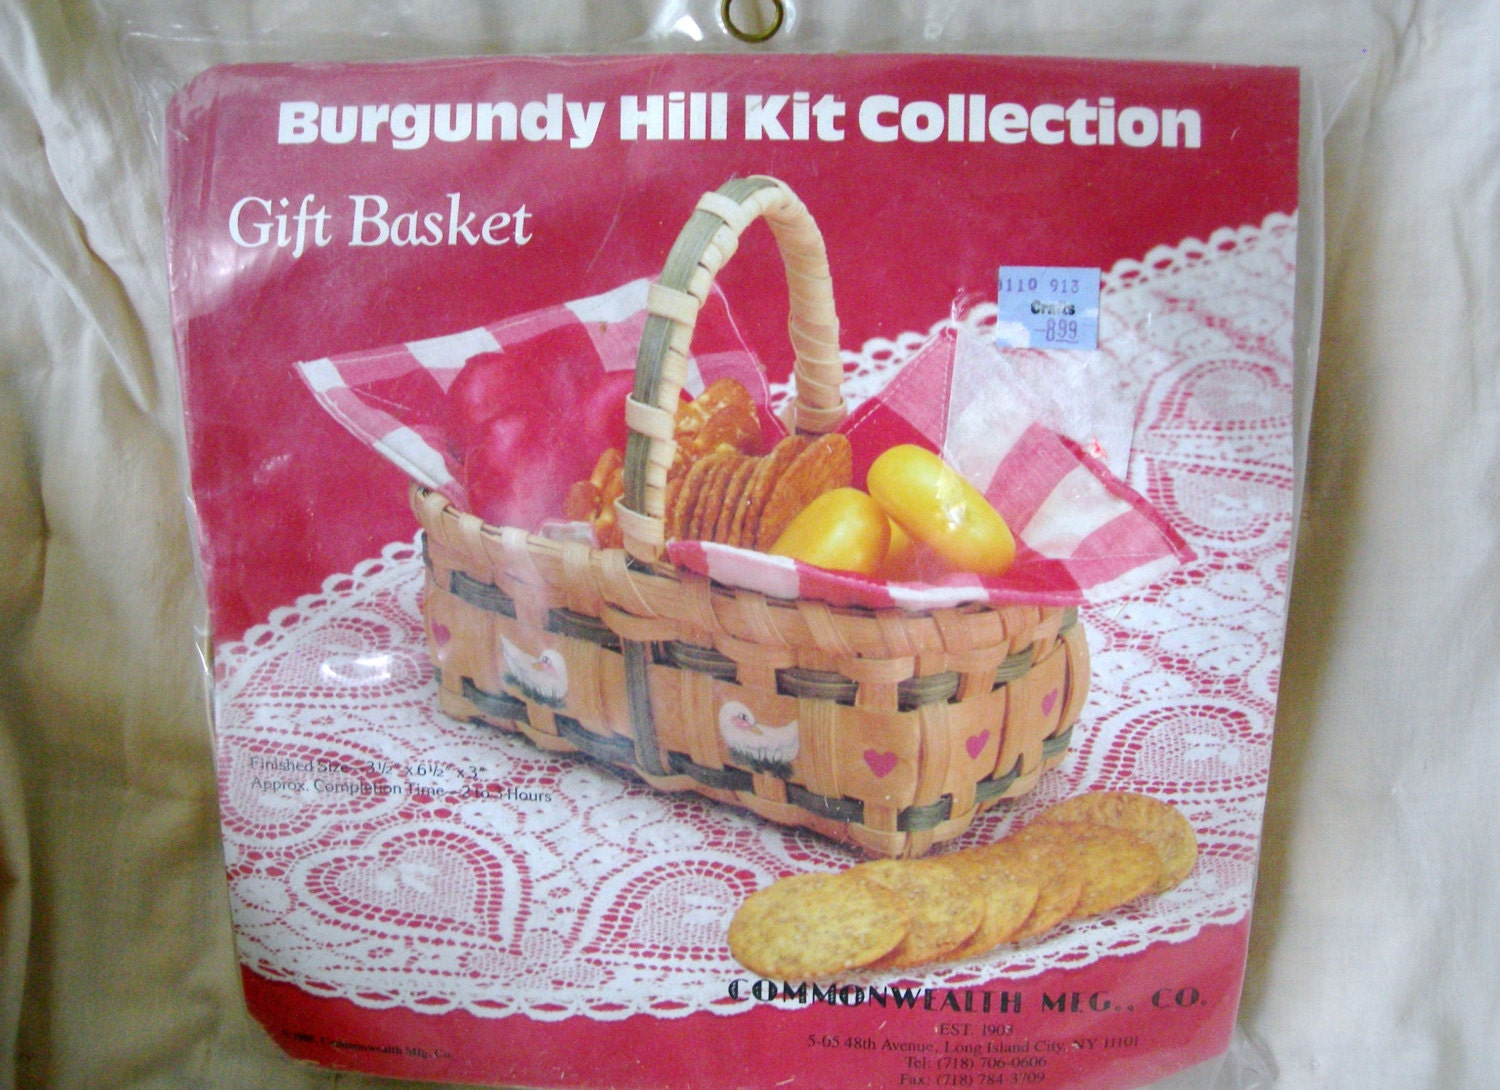 Basket Weaving Supplies And Kits : Vintage s burgundy hill kit basket weaving craft